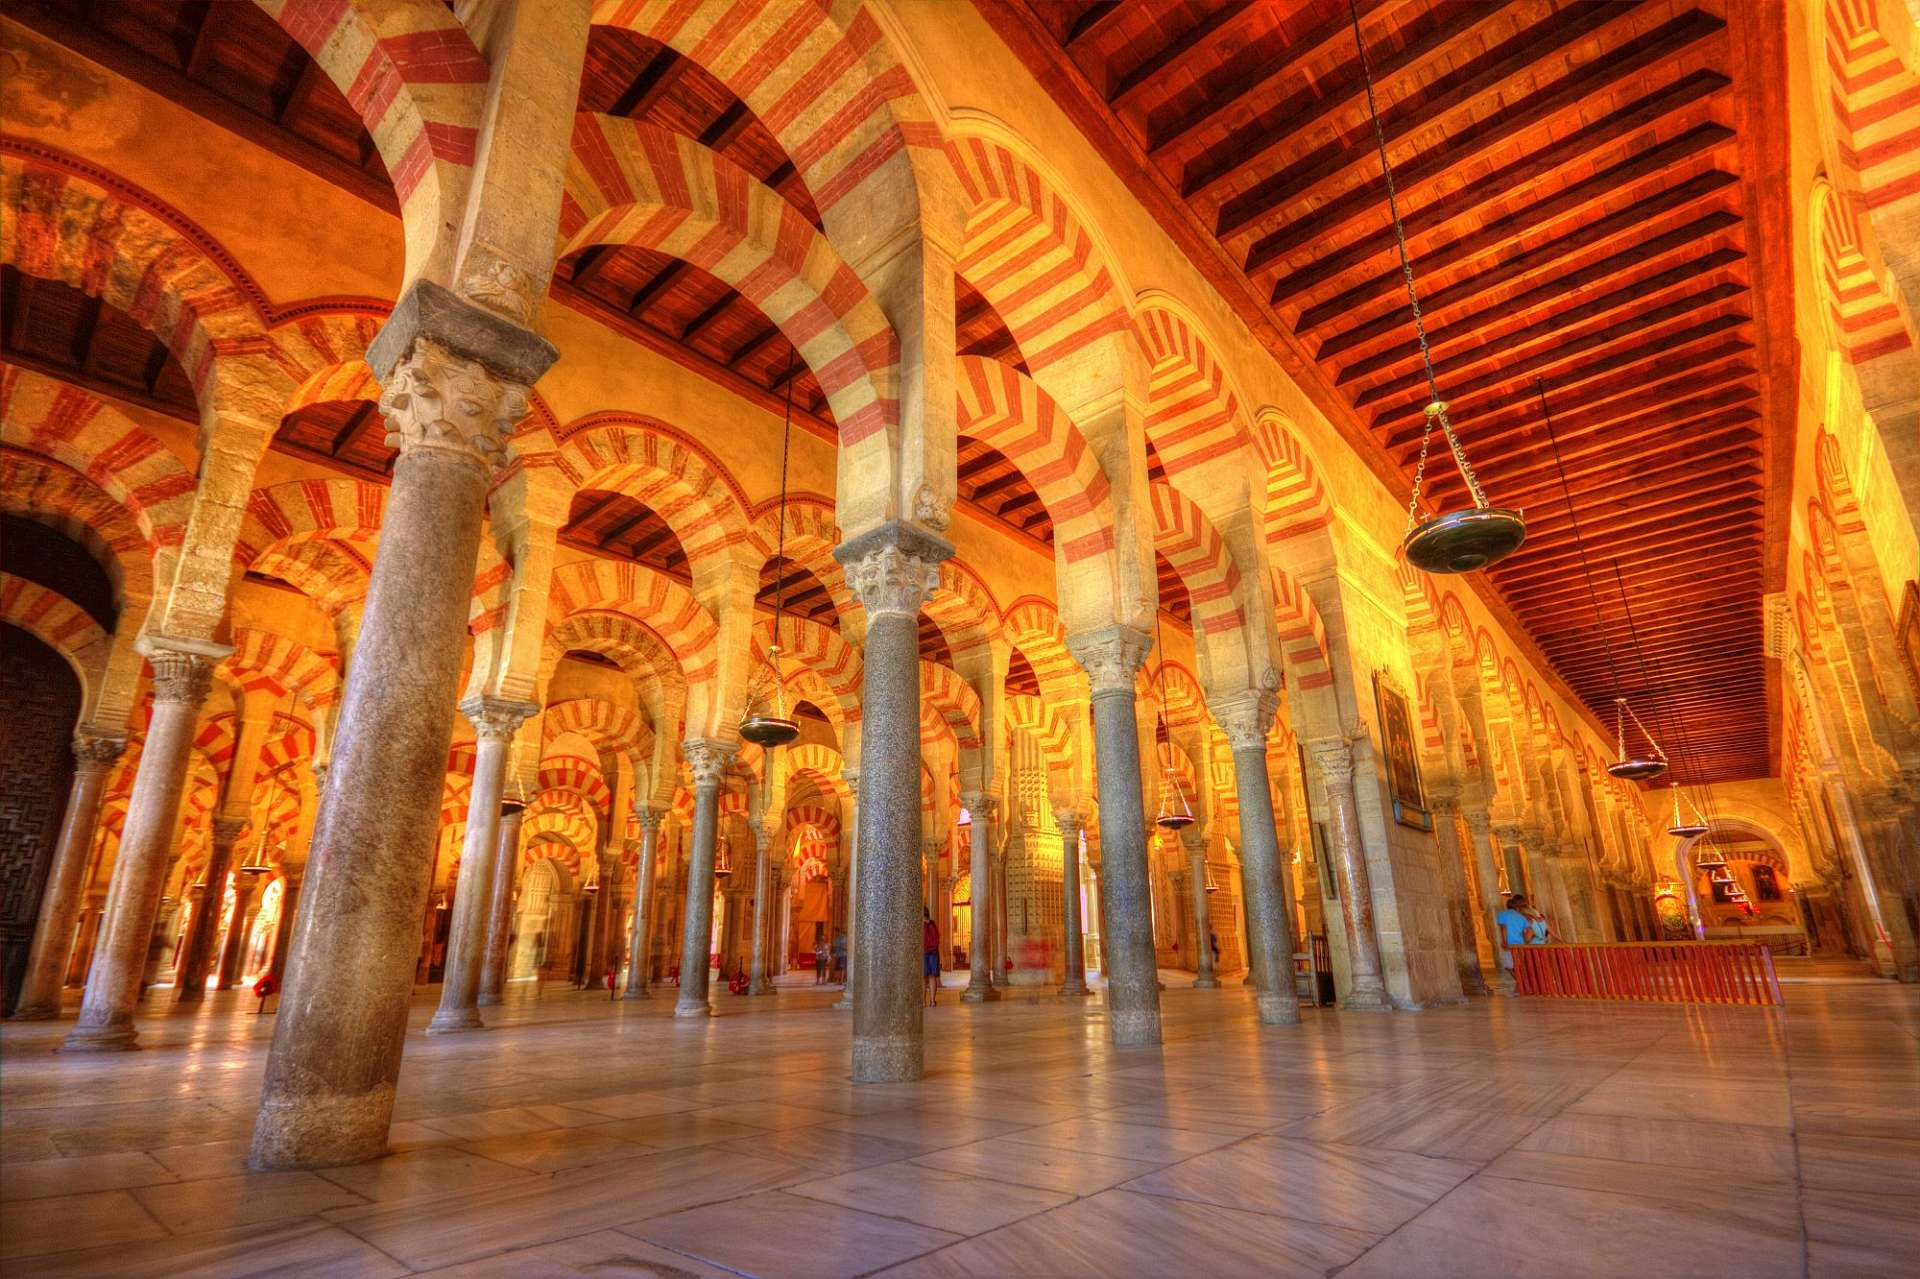 Unique forest of pillars: The Mesquita in Cordoba